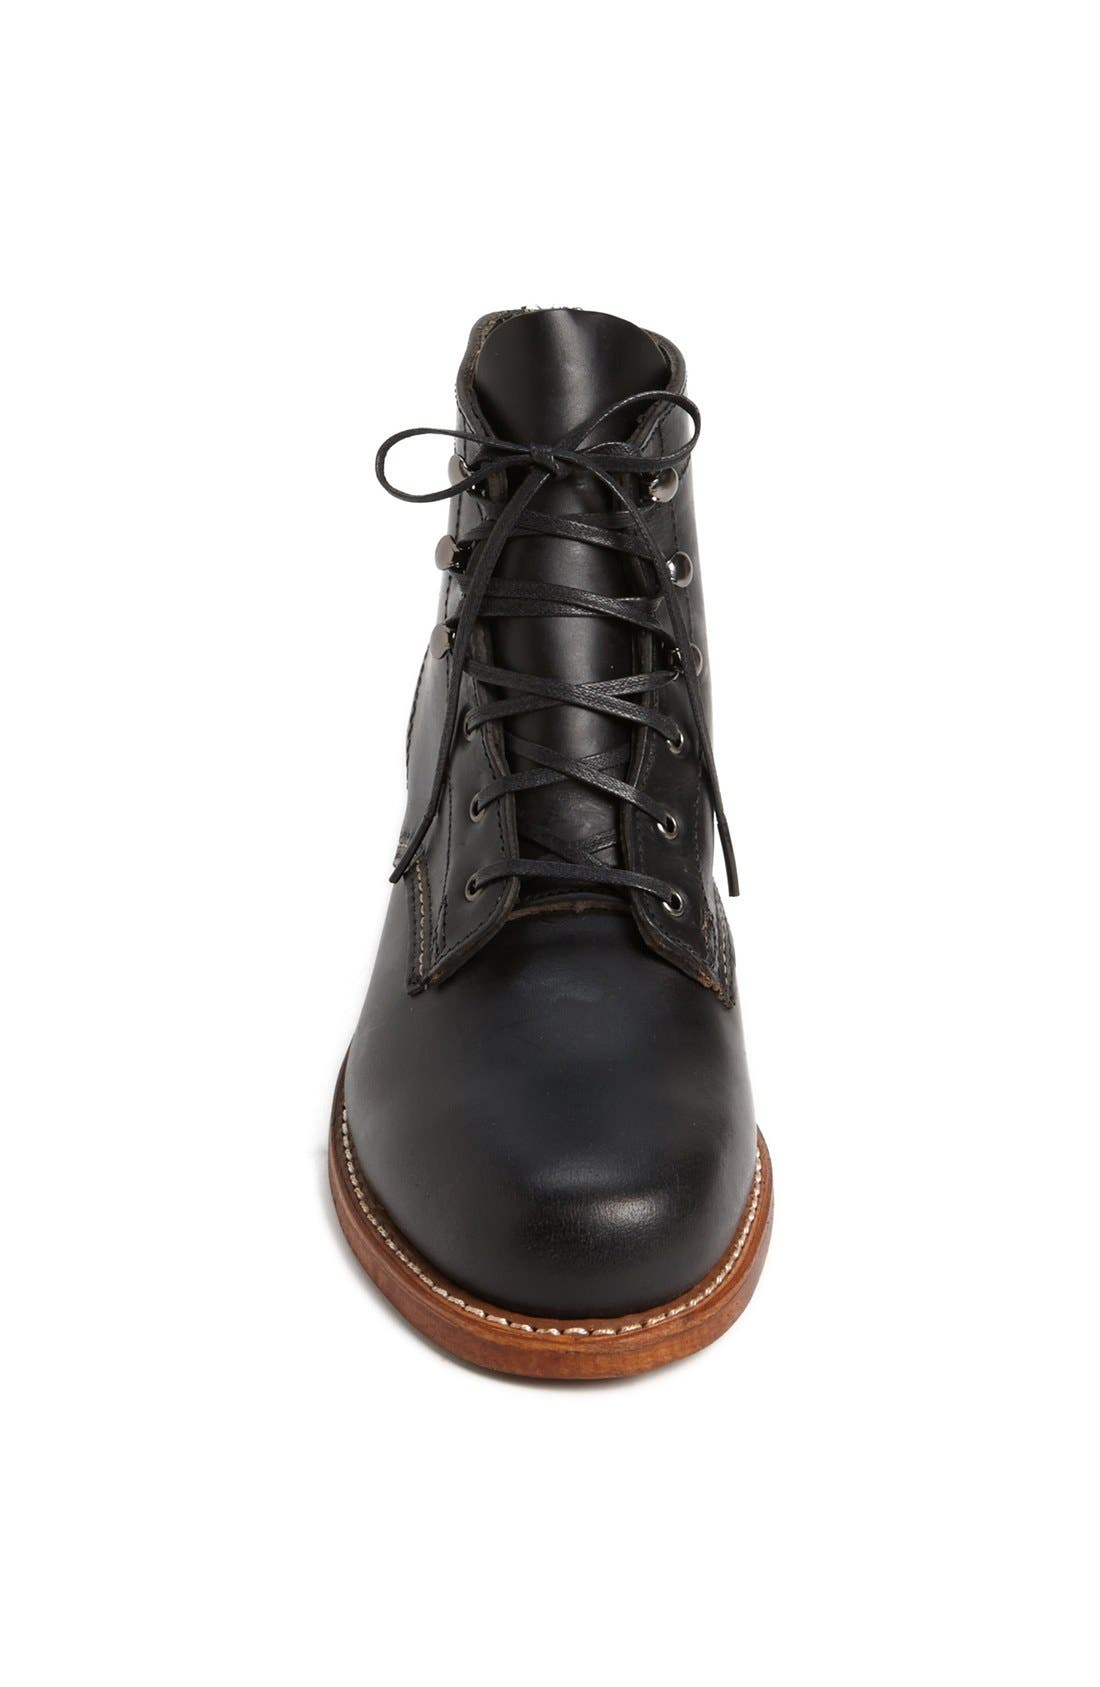 '1000 Mile' Leather Boot,                             Alternate thumbnail 3, color,                             001